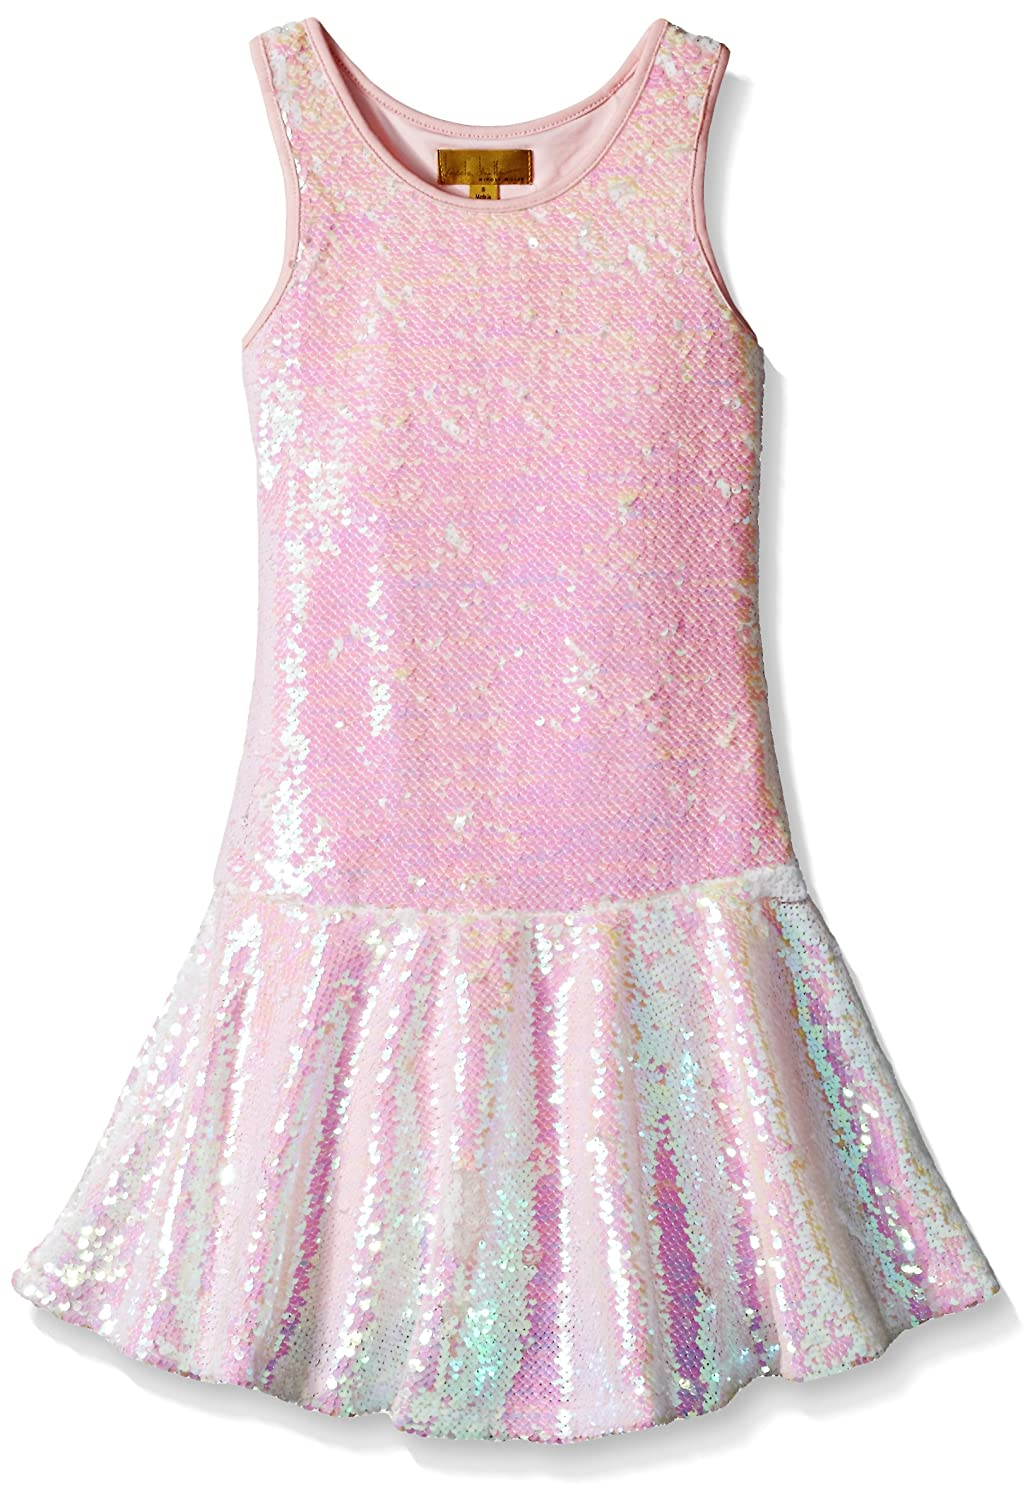 Vintage Style Children's Clothing: Girls, Boys, Baby, Toddler Iridescent Sequin Dress $84.99 AT vintagedancer.com